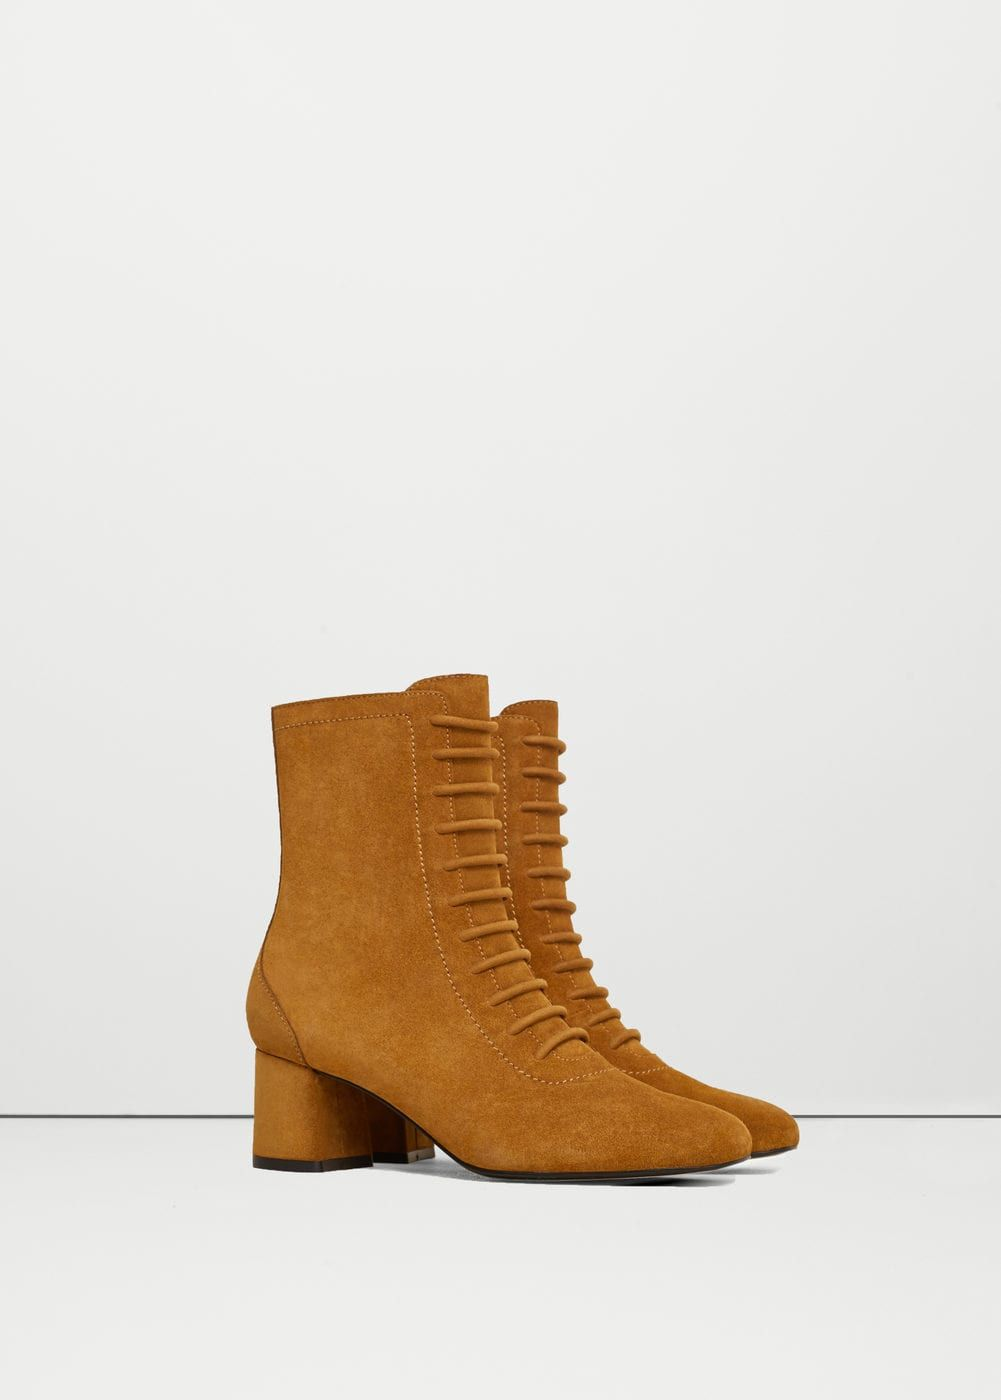 Bottines en cuir lacées - Femme   ️Fashion   Bottines en cuir ... e1e0cc299415